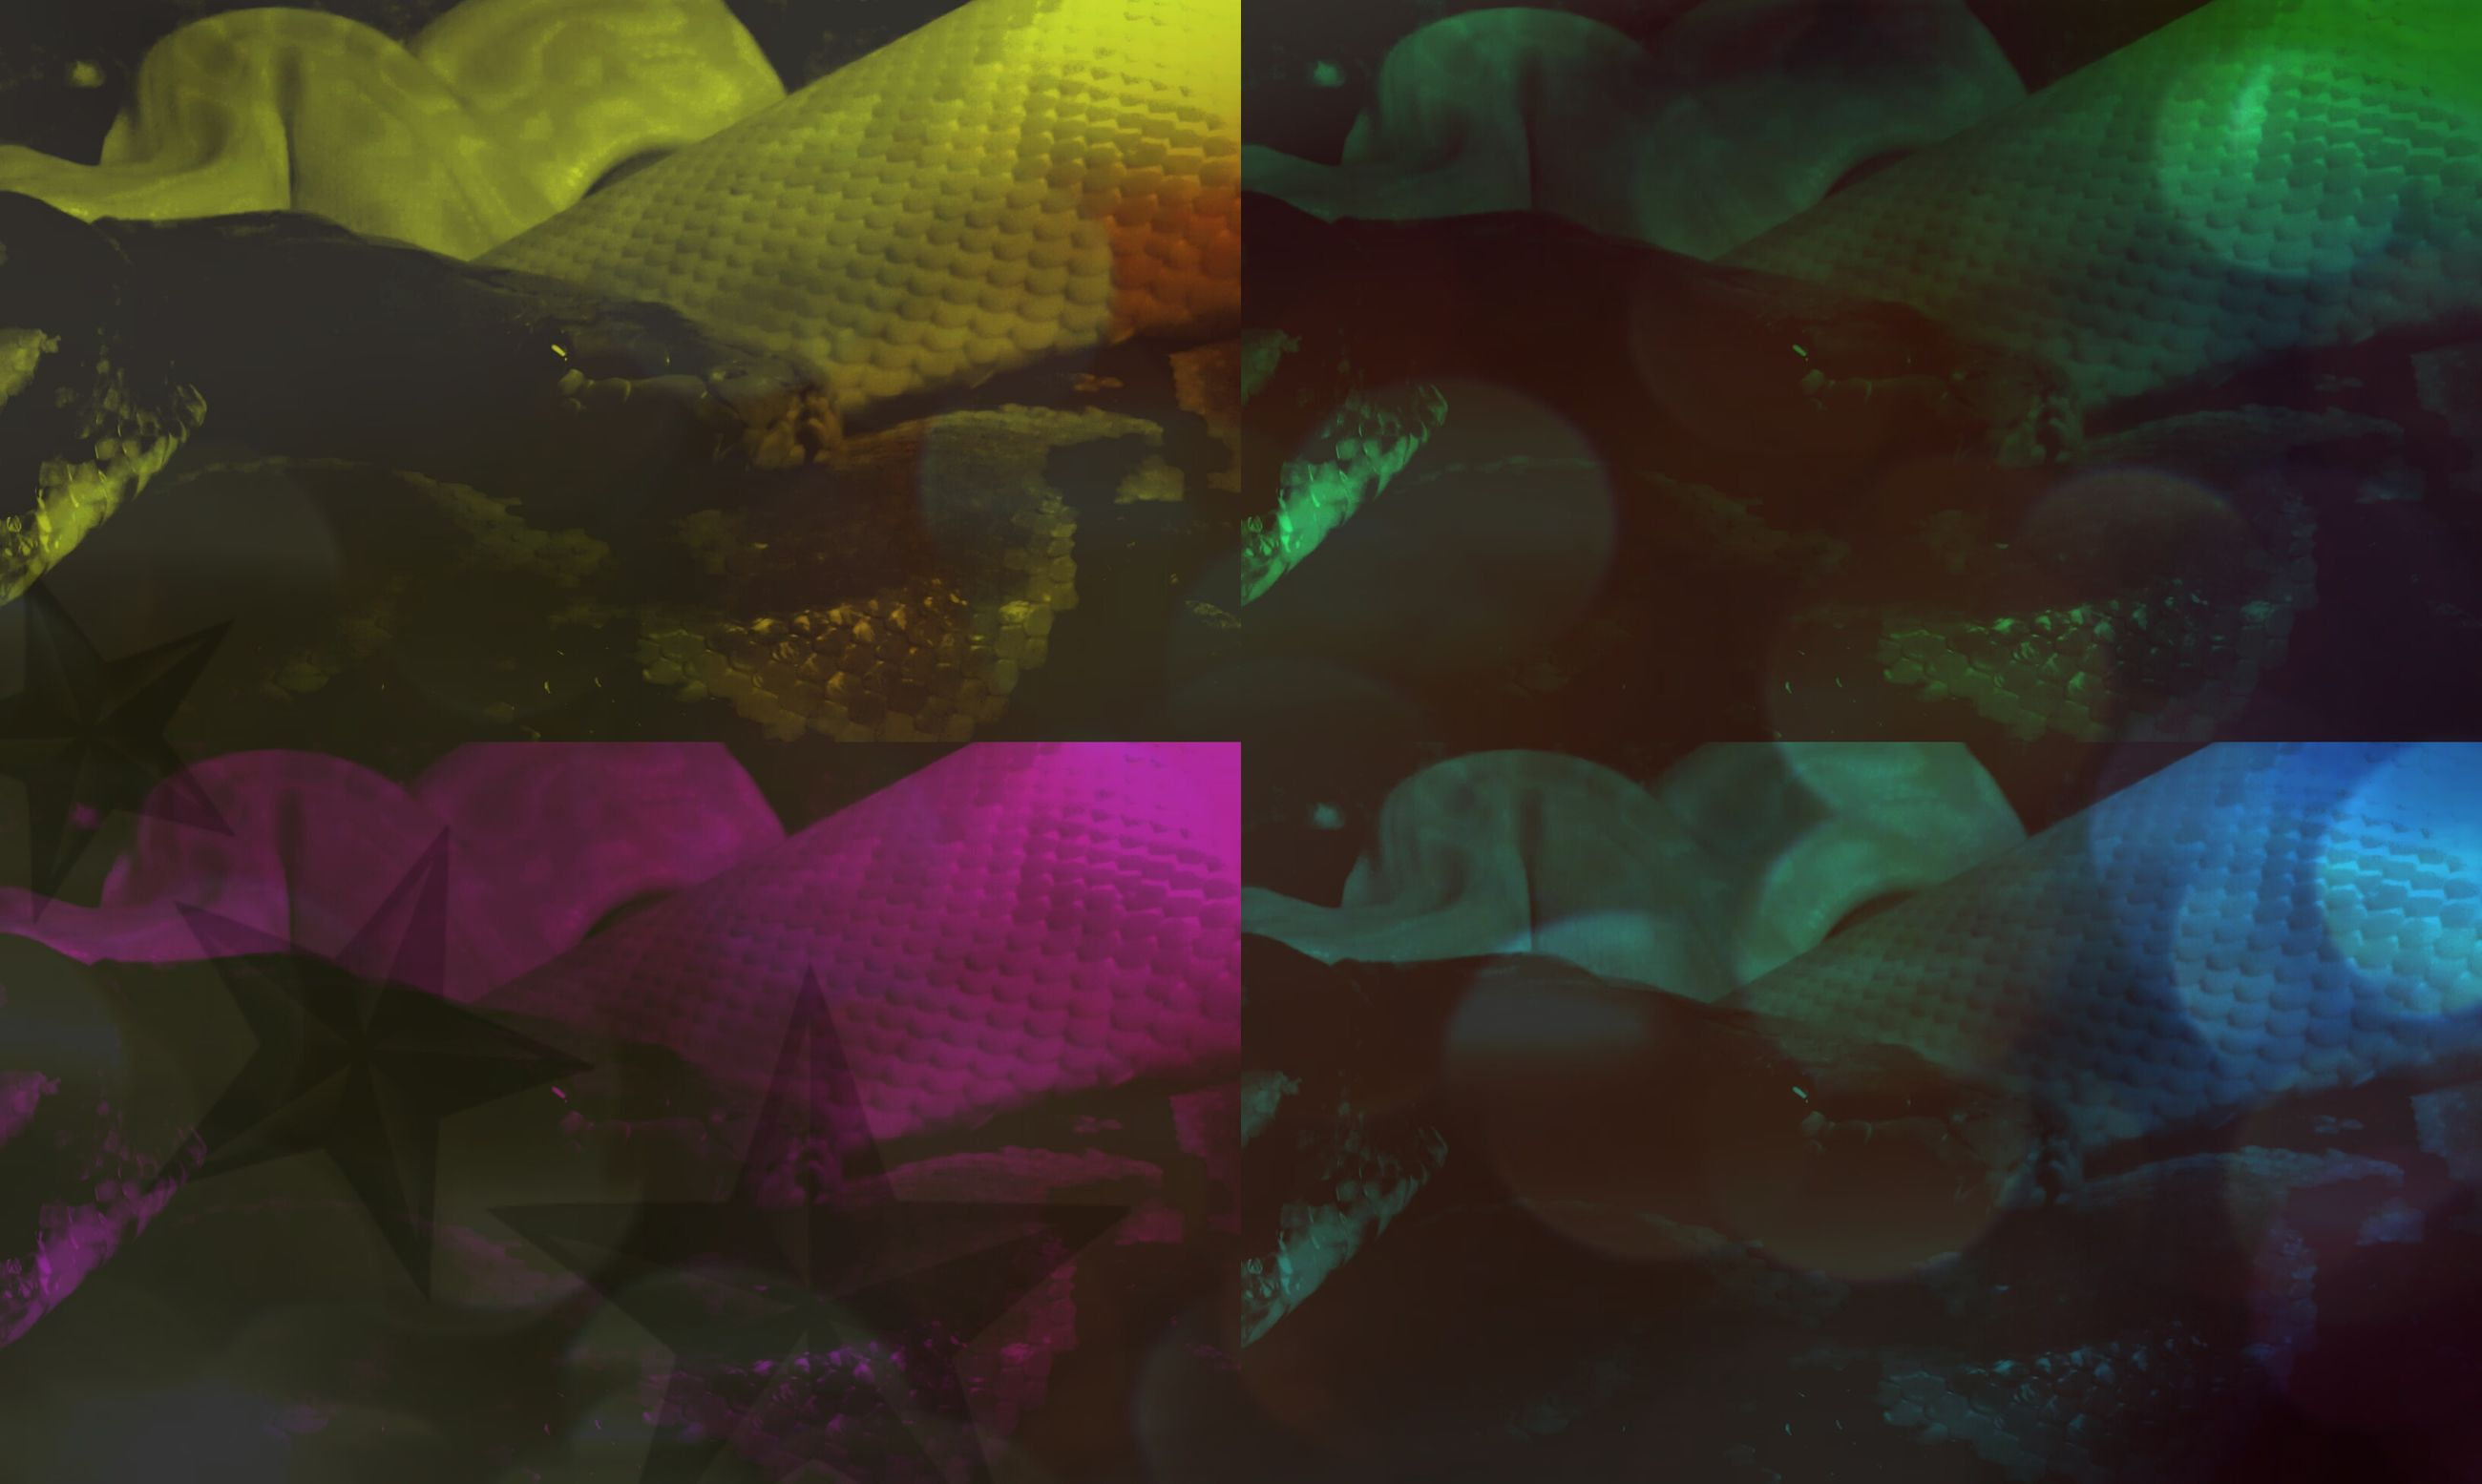 indoors, underwater, high angle view, close-up, fish, sunlight, no people, nature, day, textile, fabric, variation, multi colored, green color, abundance, sea life, water, plastic, relaxation